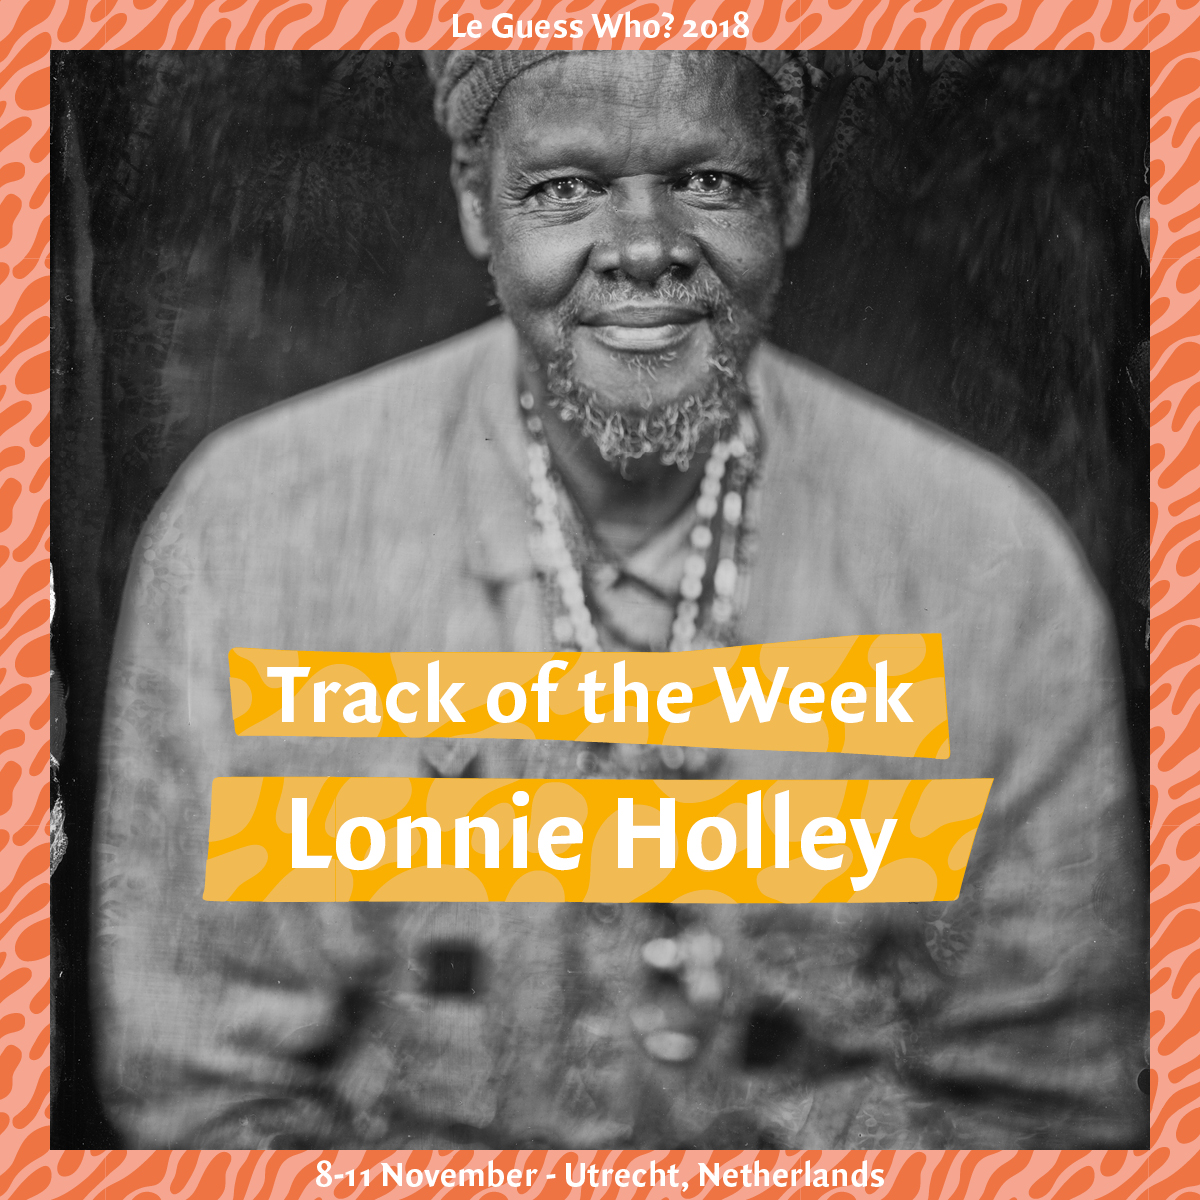 Track of the Week #21: Lonnie Holley - 'Sometimes I Wanna Dance'